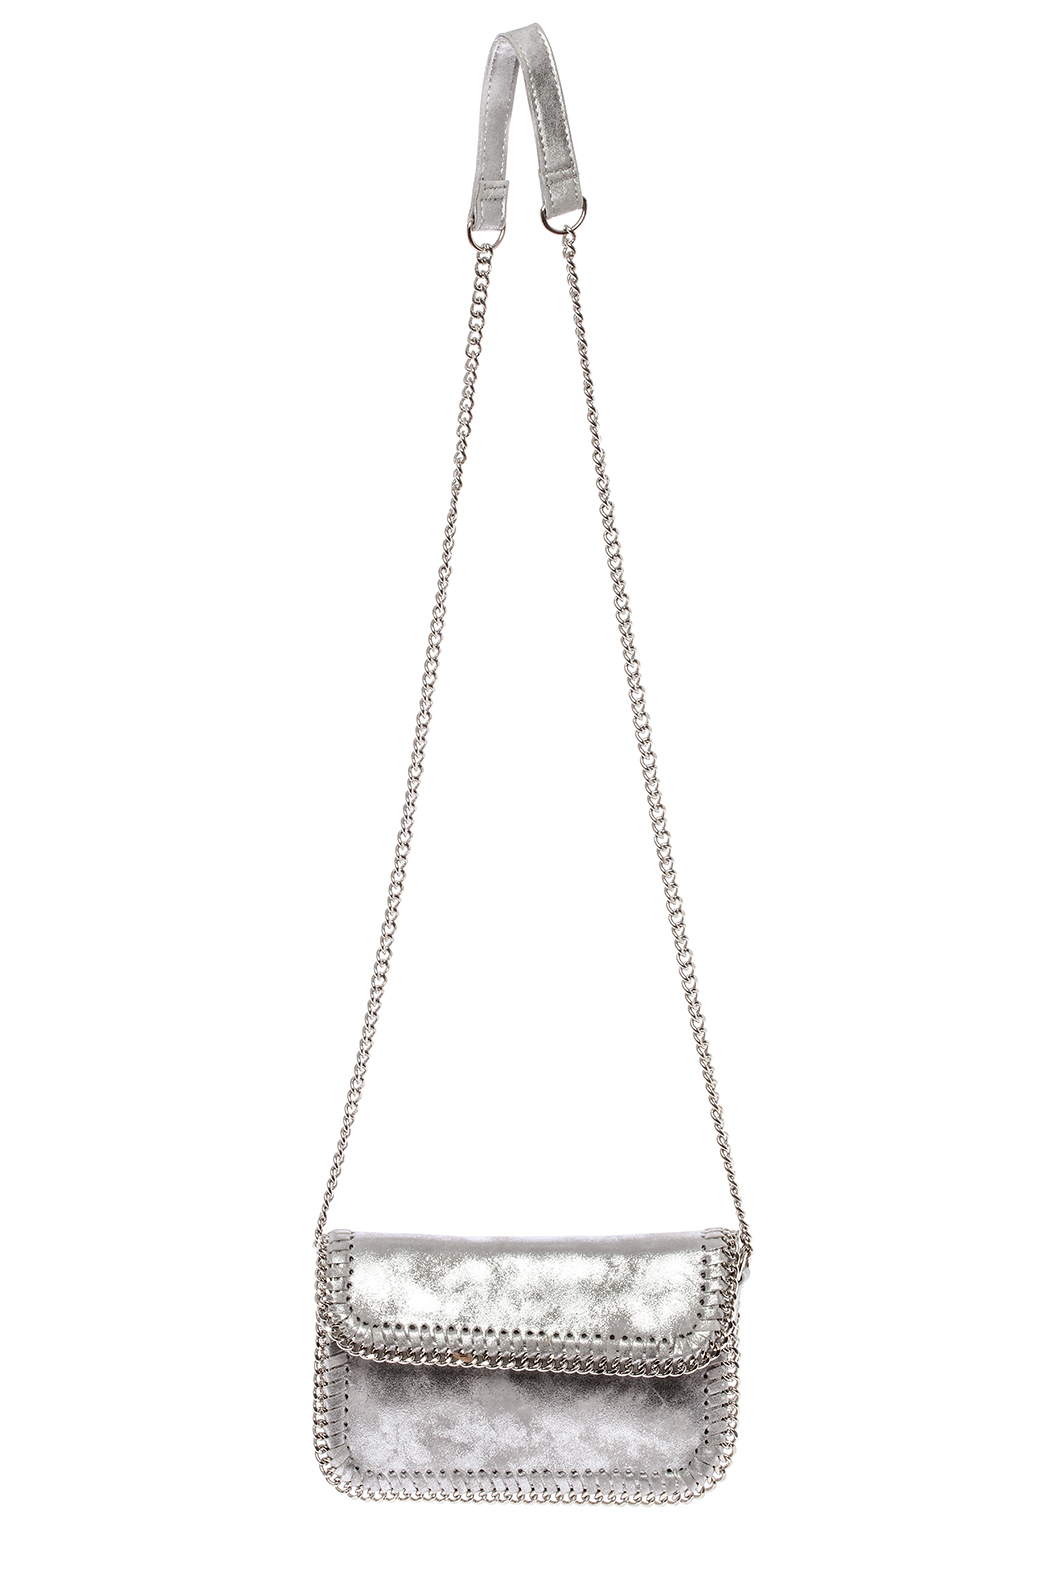 Sondra Roberts Silver Crossbody Bag - Main Image